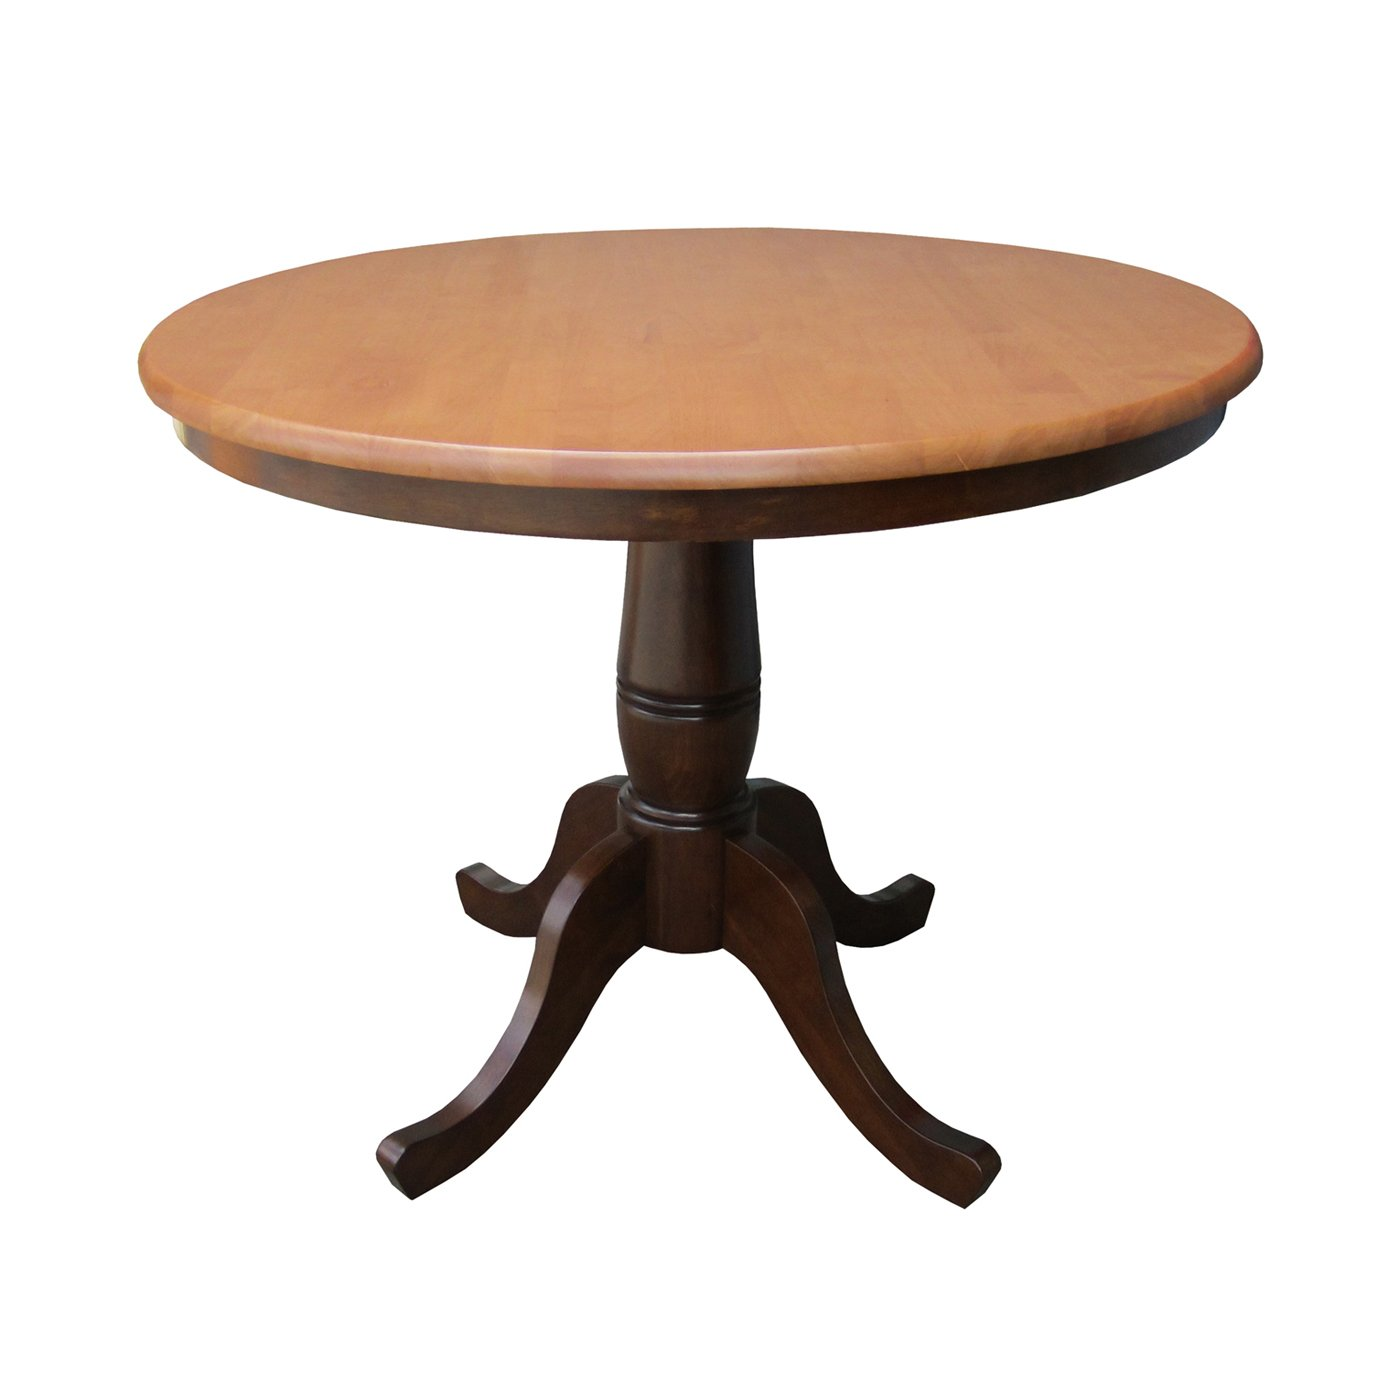 1400x1400px 7 Nice 36 Round Pedestal Dining Table Picture in Furniture